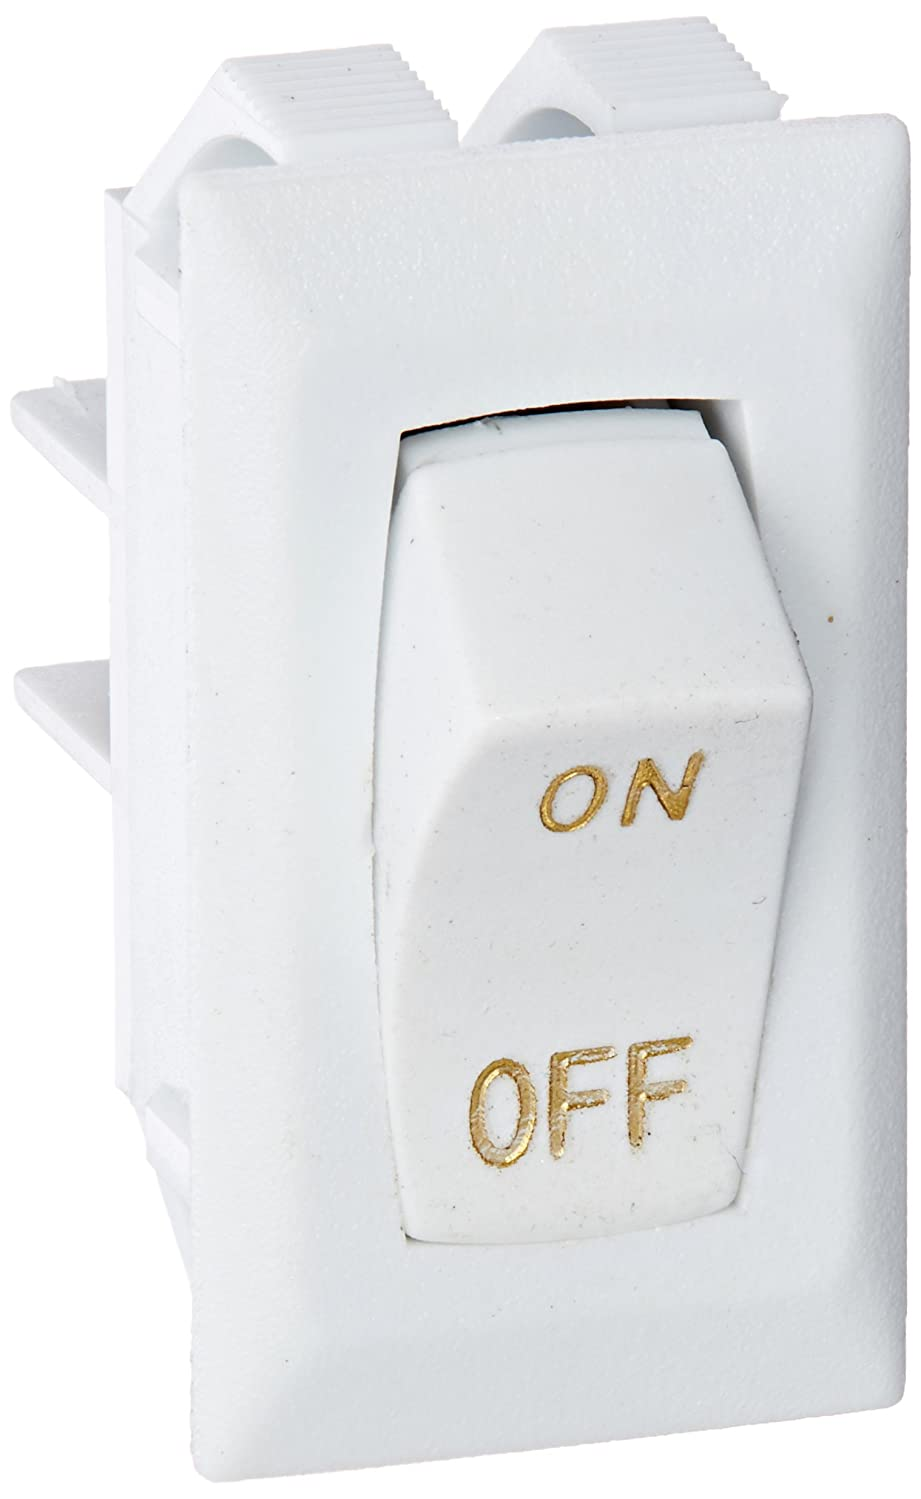 RV Designer Collection White S265 Rocker Switch 10A W/Gold Text